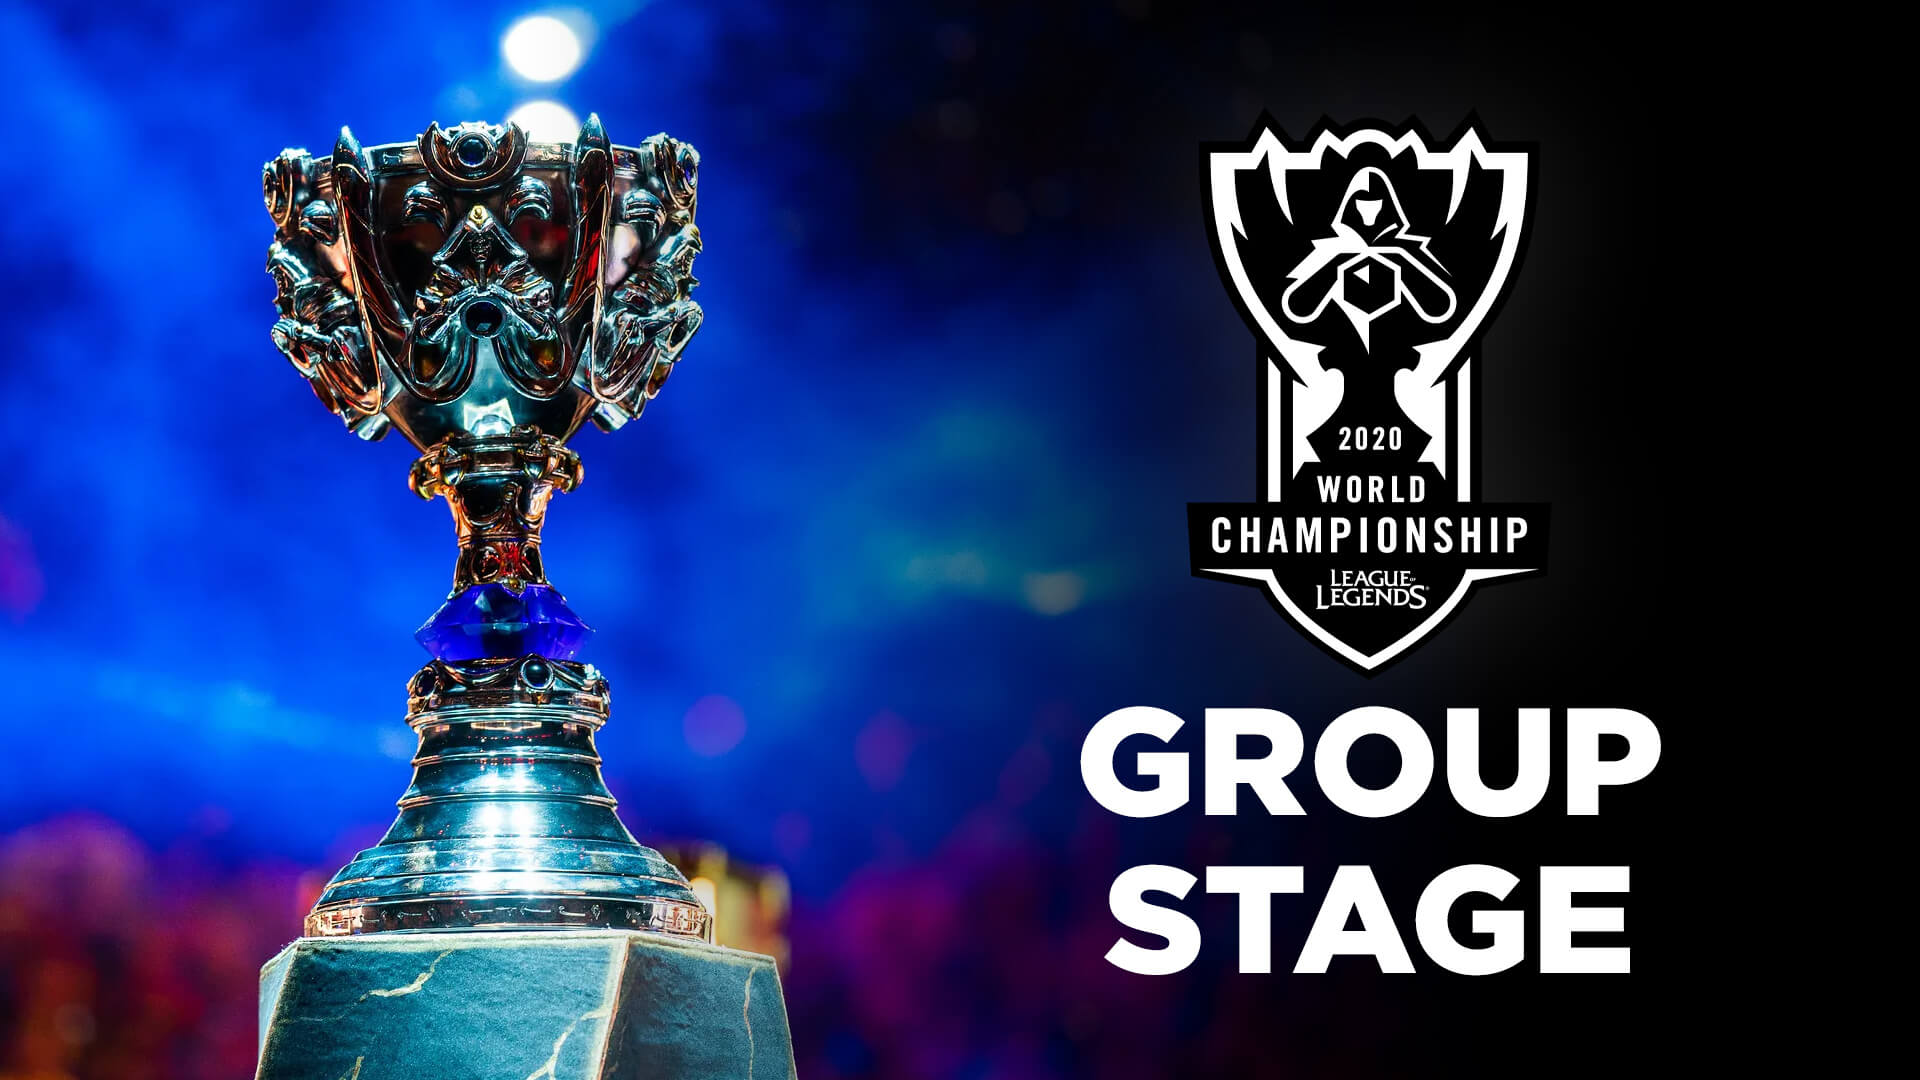 League of Legends World Championship 2020 – Group Stage